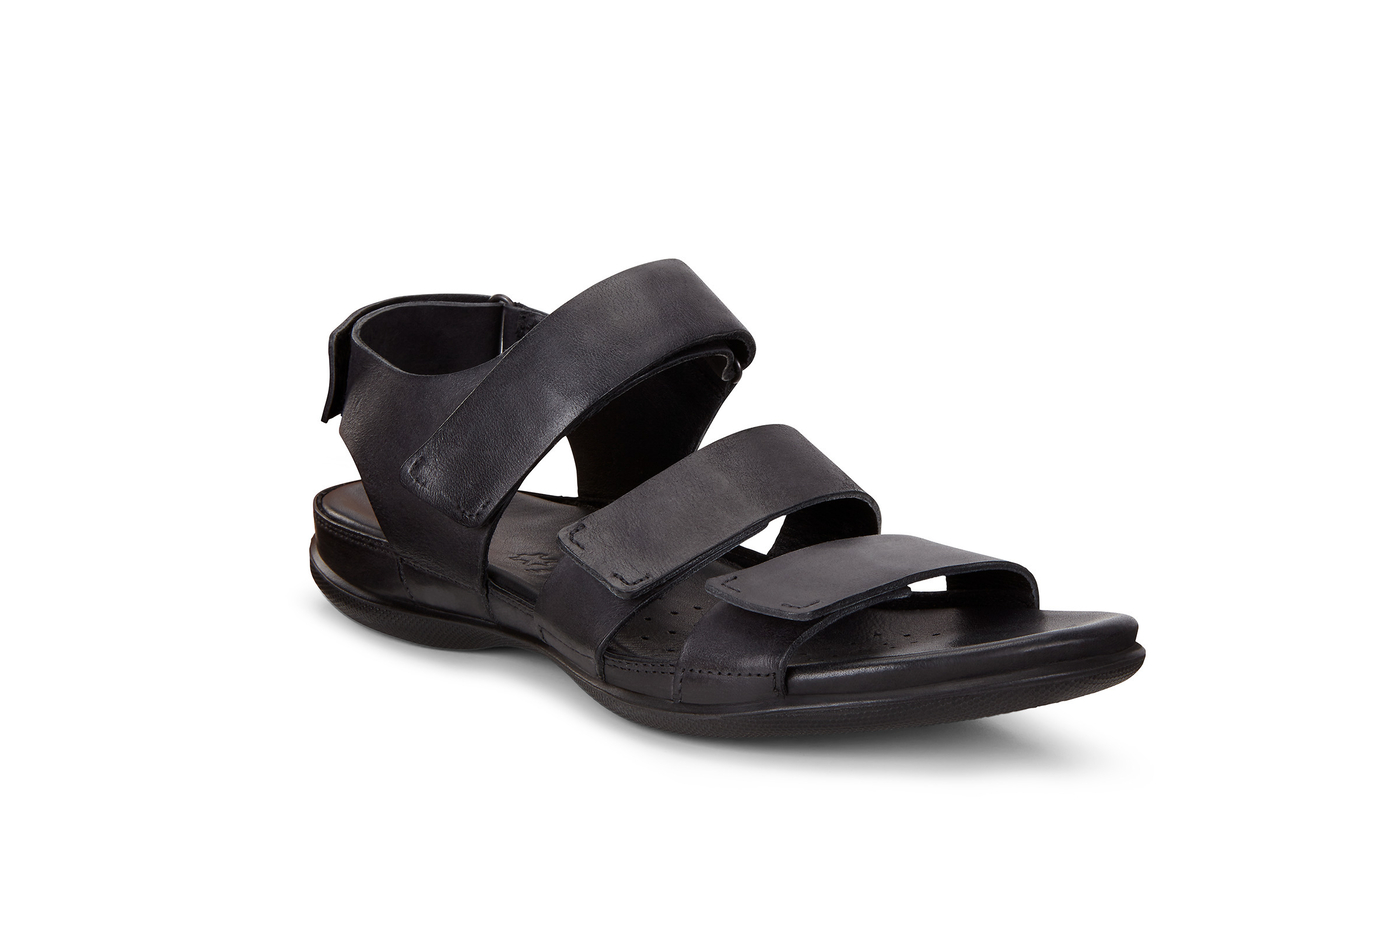 ECCO Women's FLASH Sandal